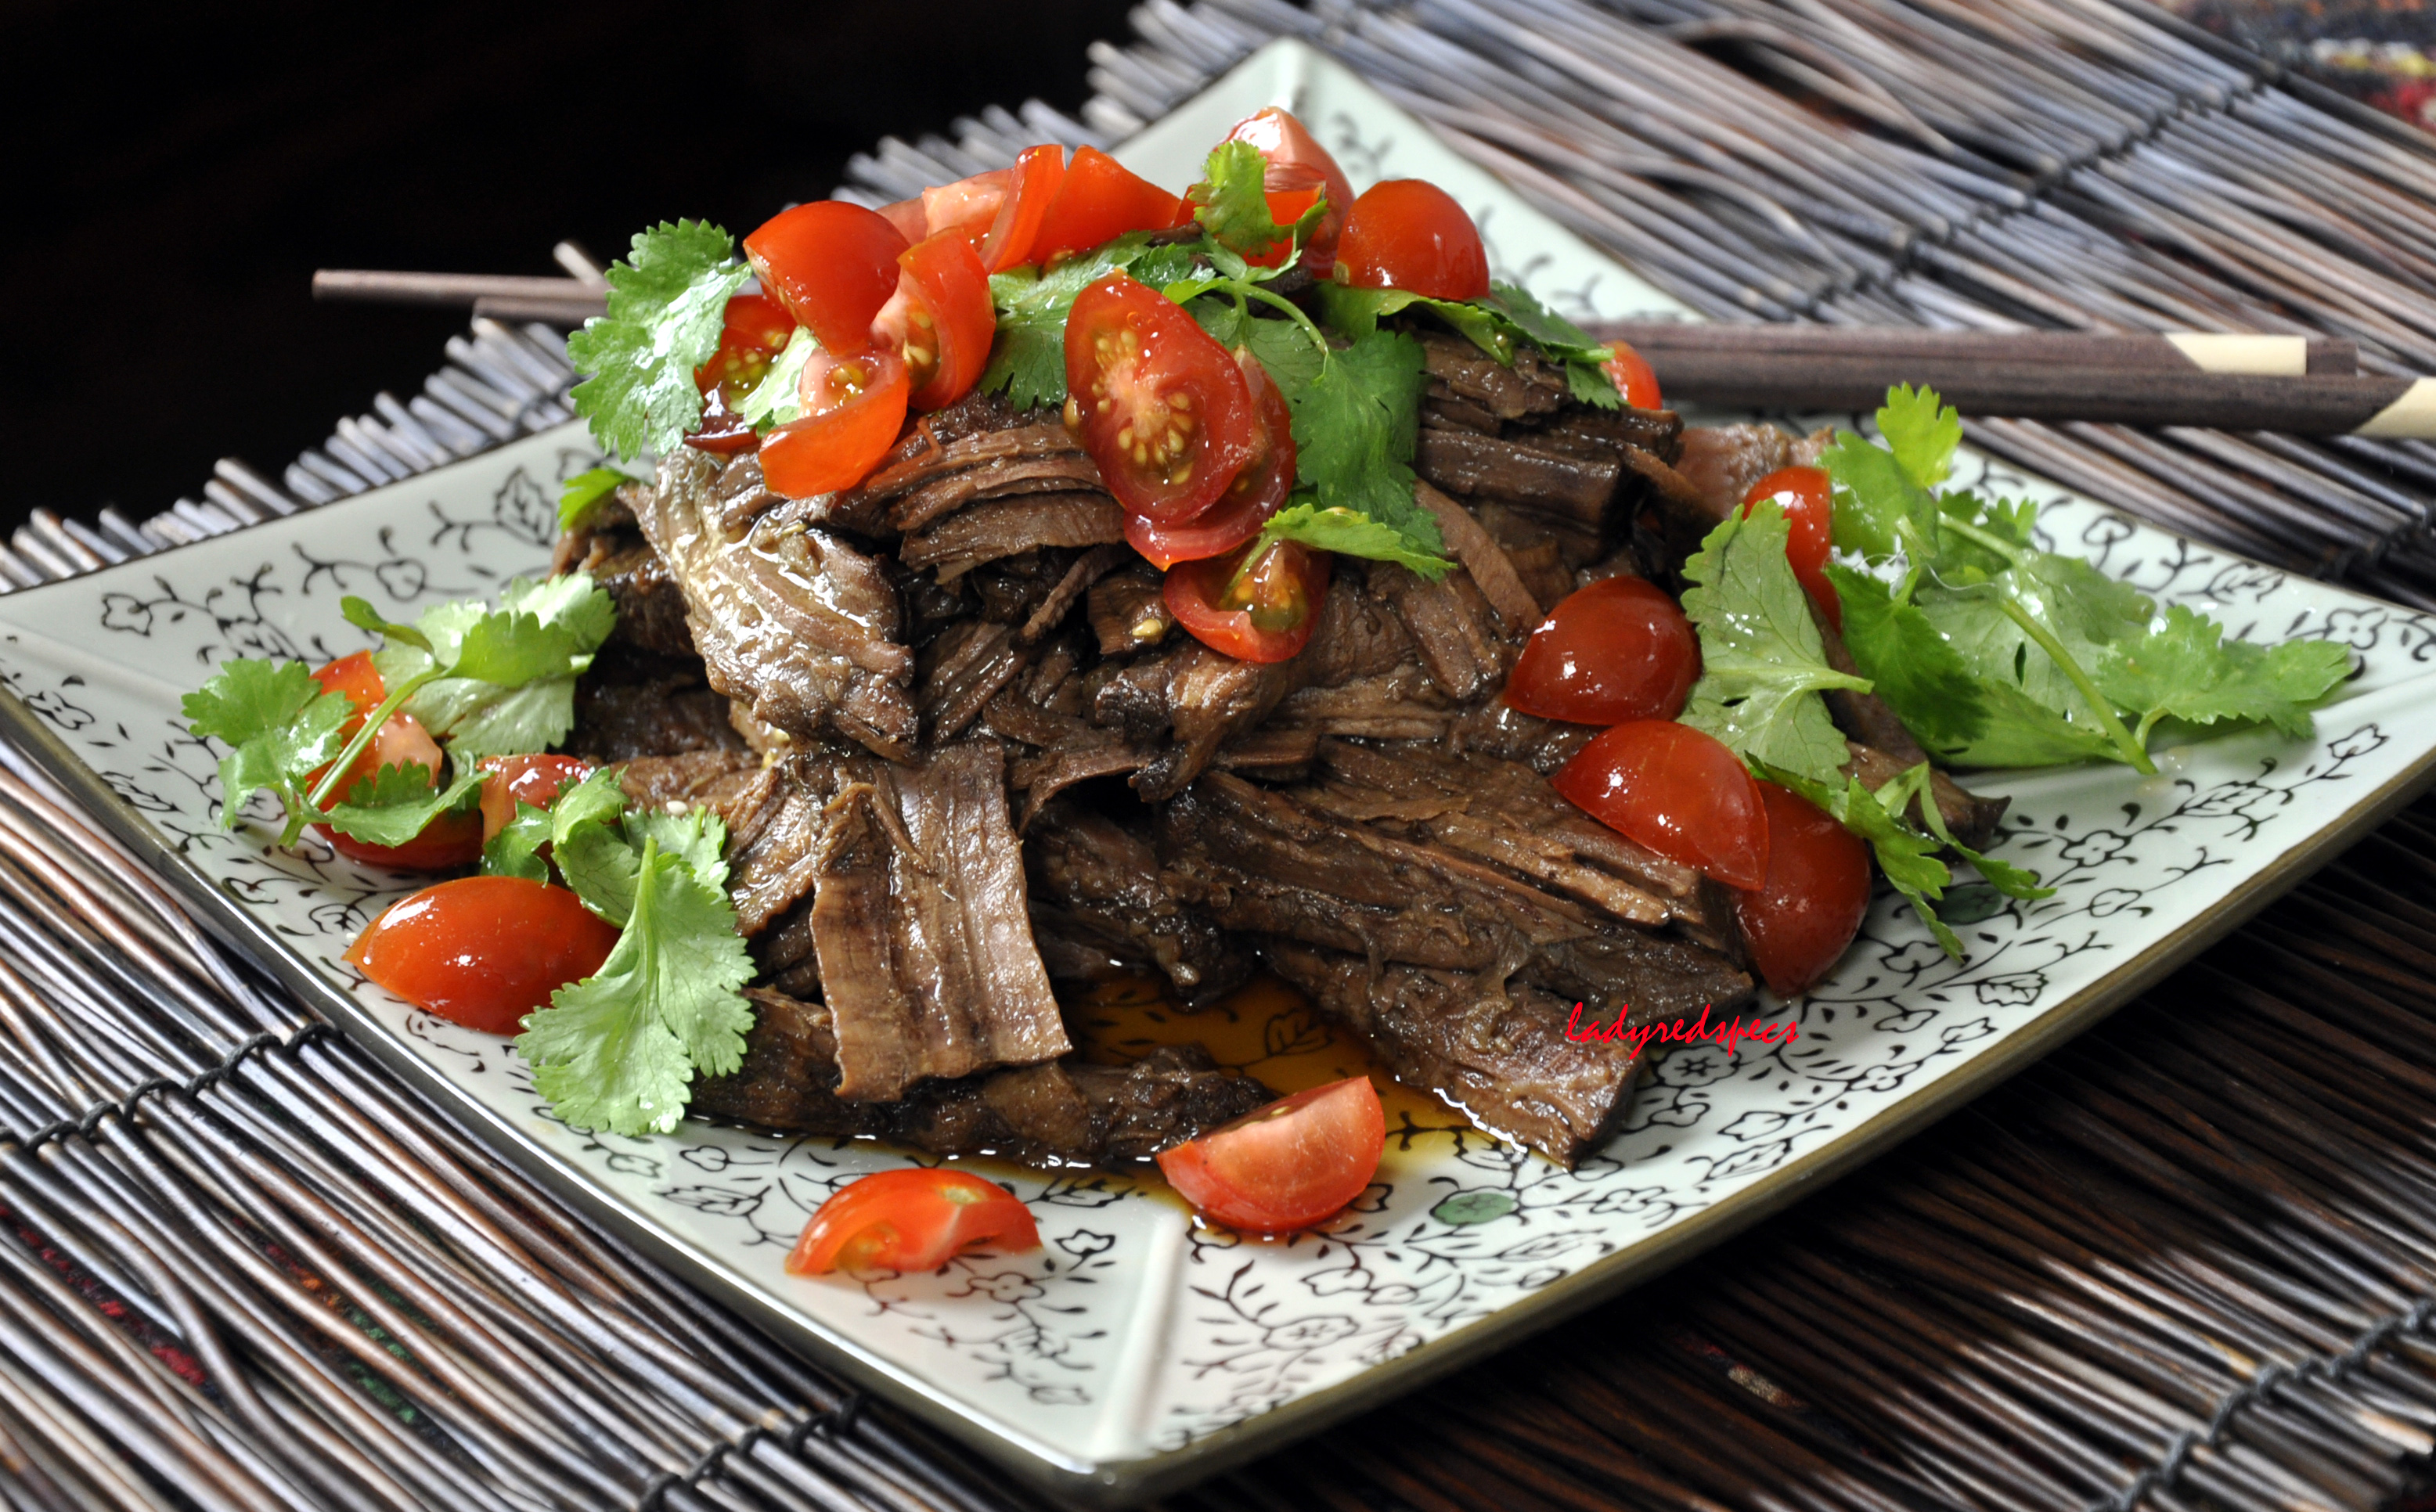 Spice And Herb Oven-Braised Brisket Recipes — Dishmaps